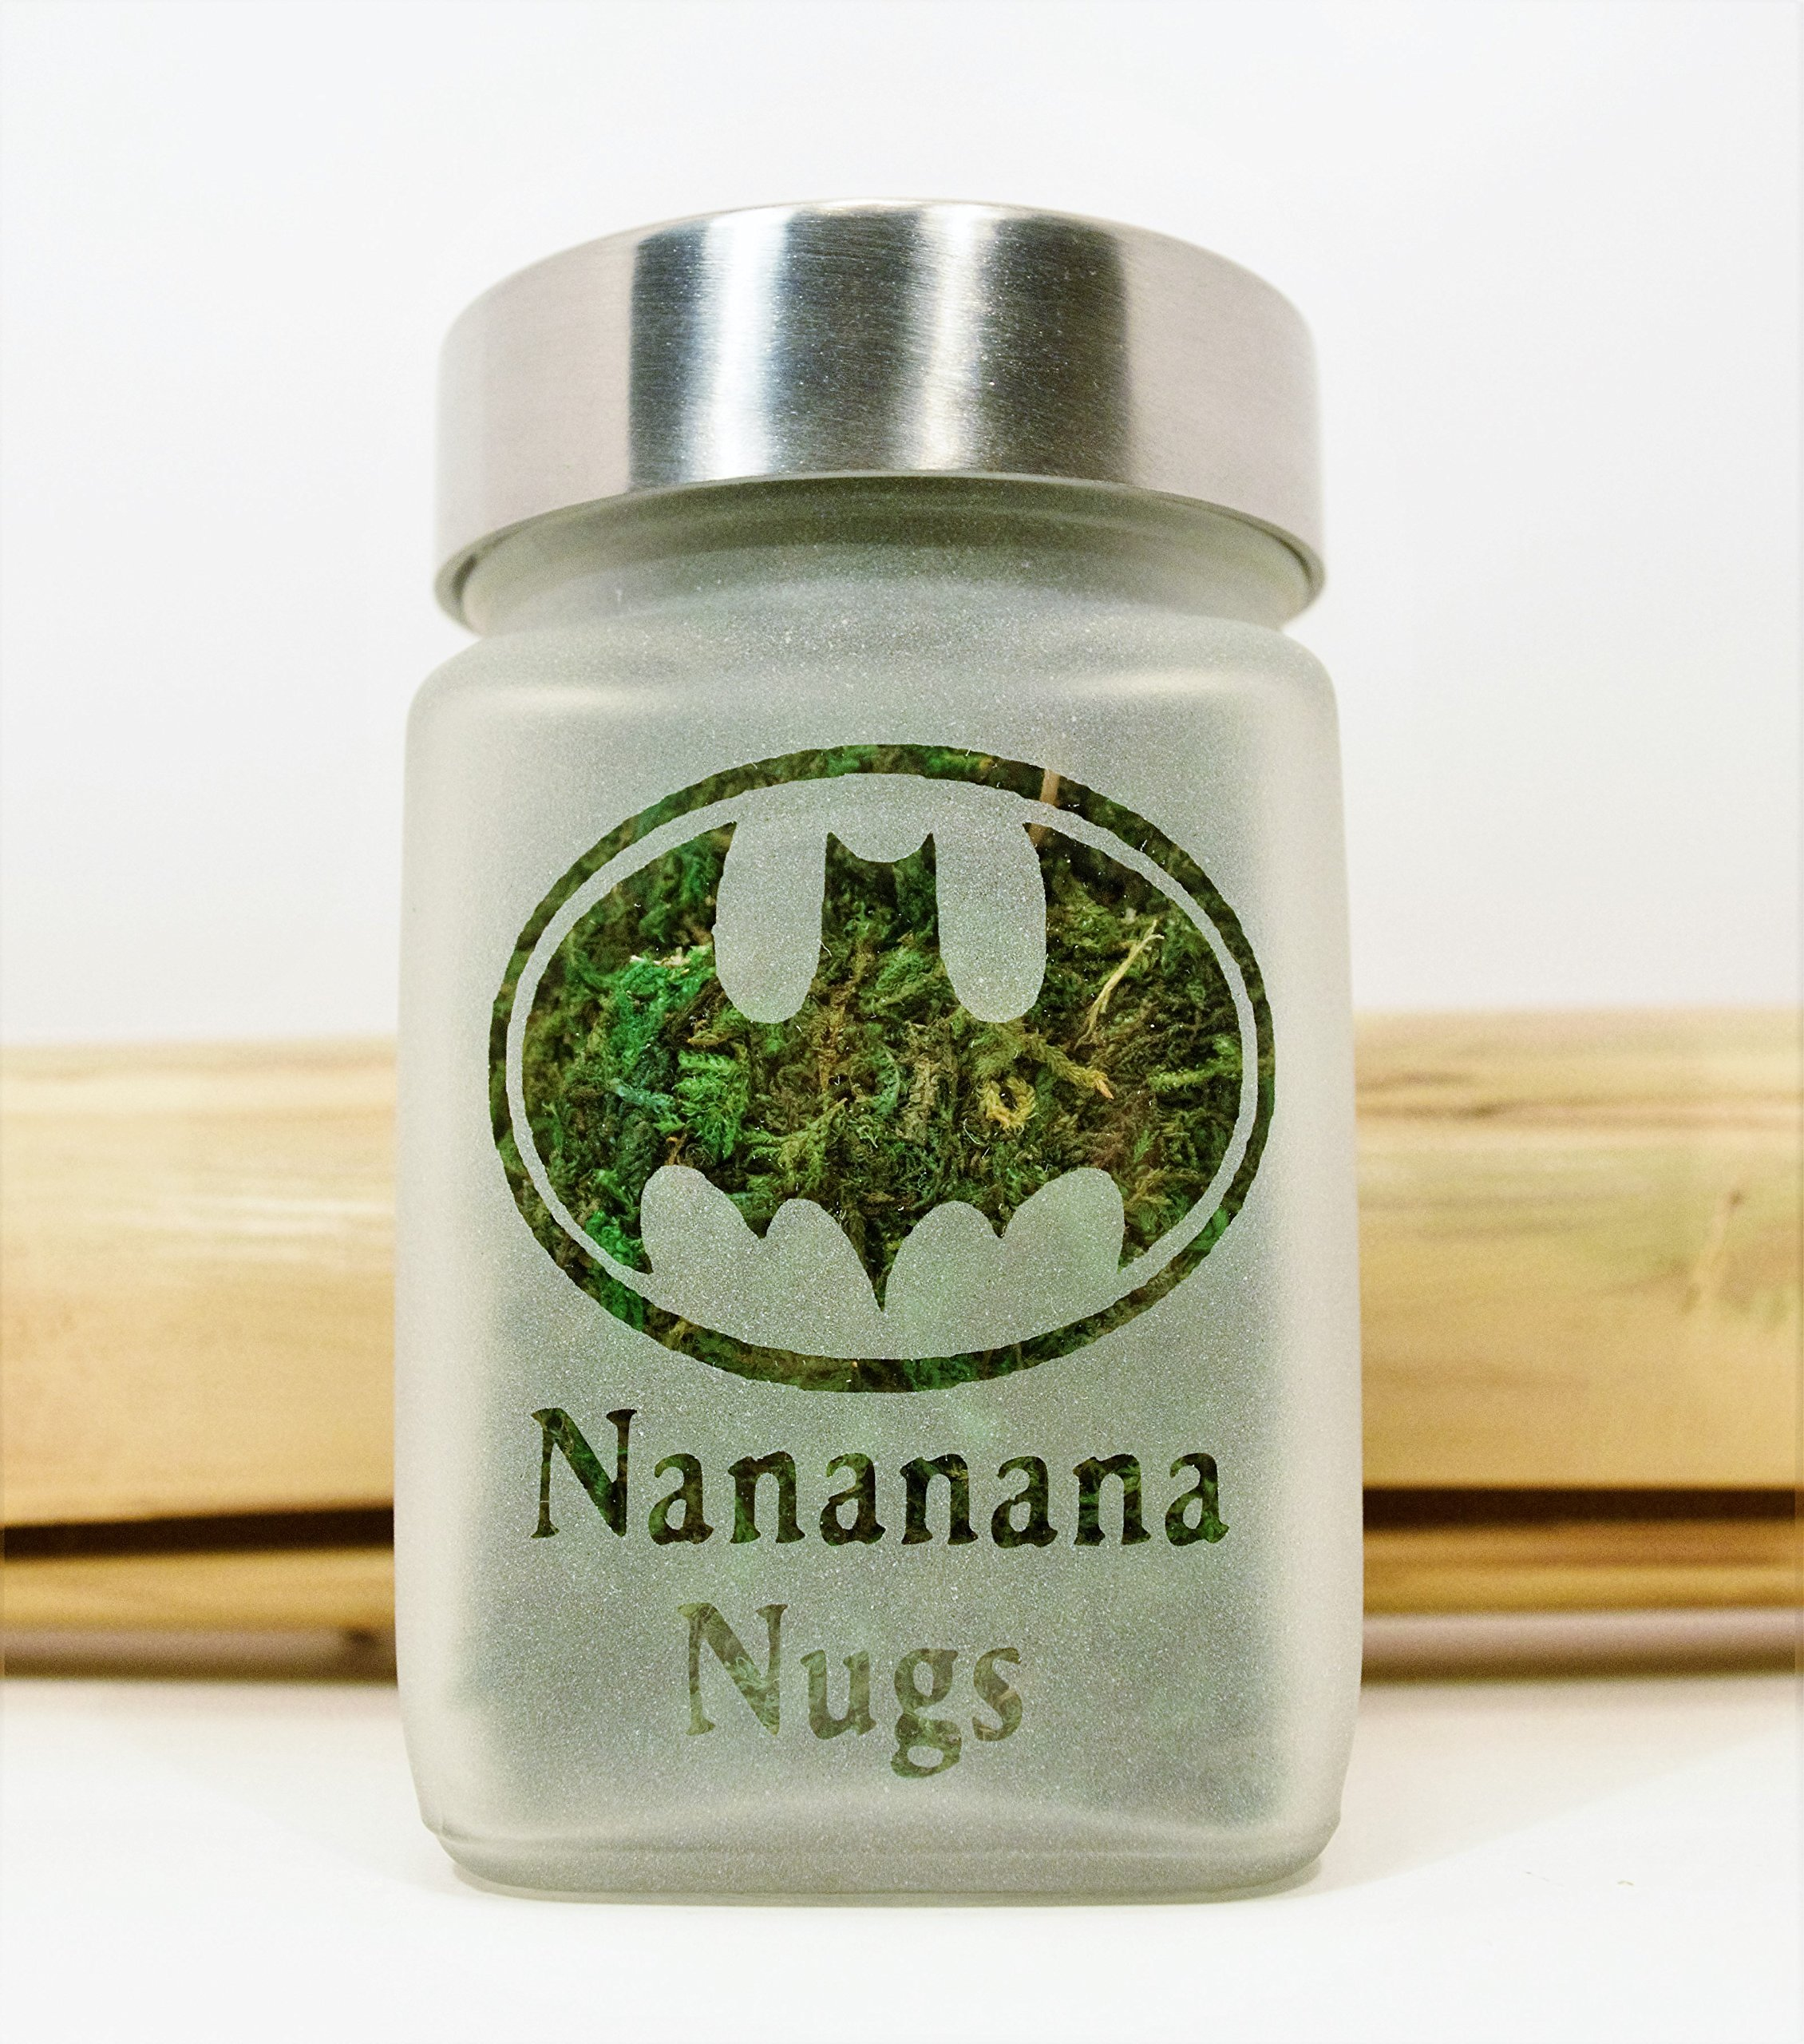 Retro Batman Stash Jar | Nananana Nugs Weed Jar and Weed Accessories | Stoner Gifts, Stash Jars & Stoner Accessories by Twisted420Glass (Image #5)